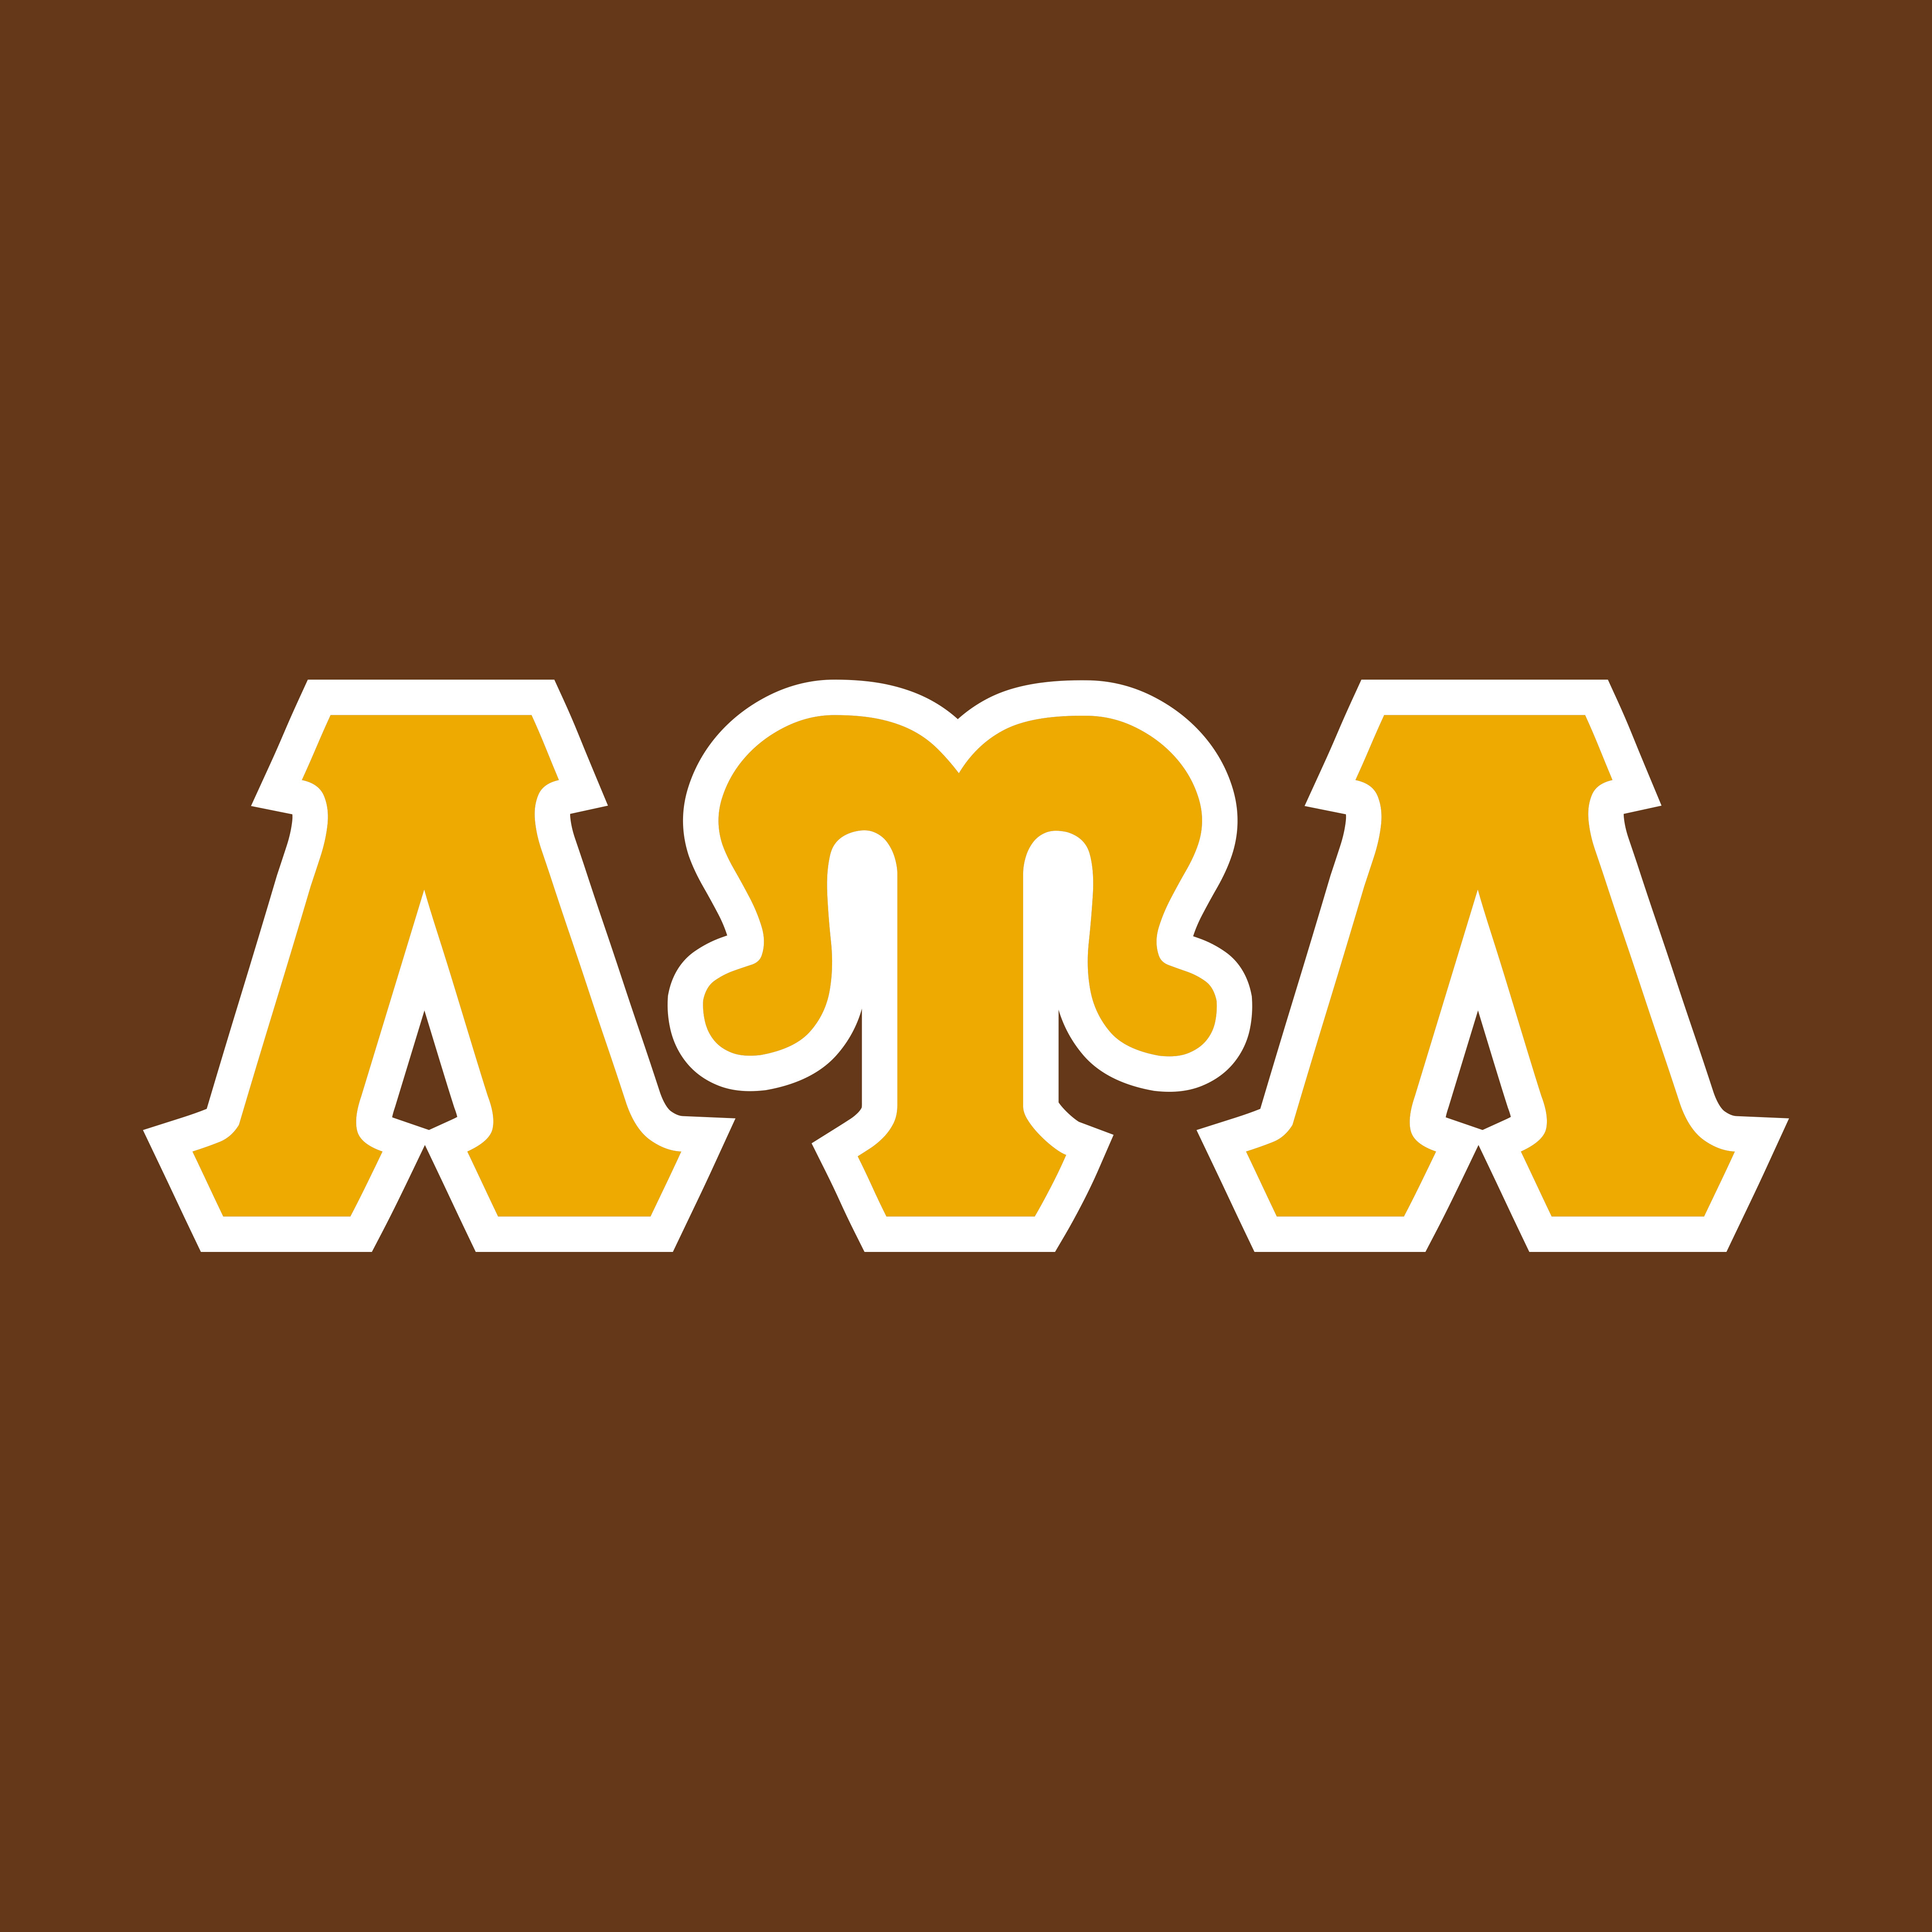 LUL Letters Gold/White on Brown